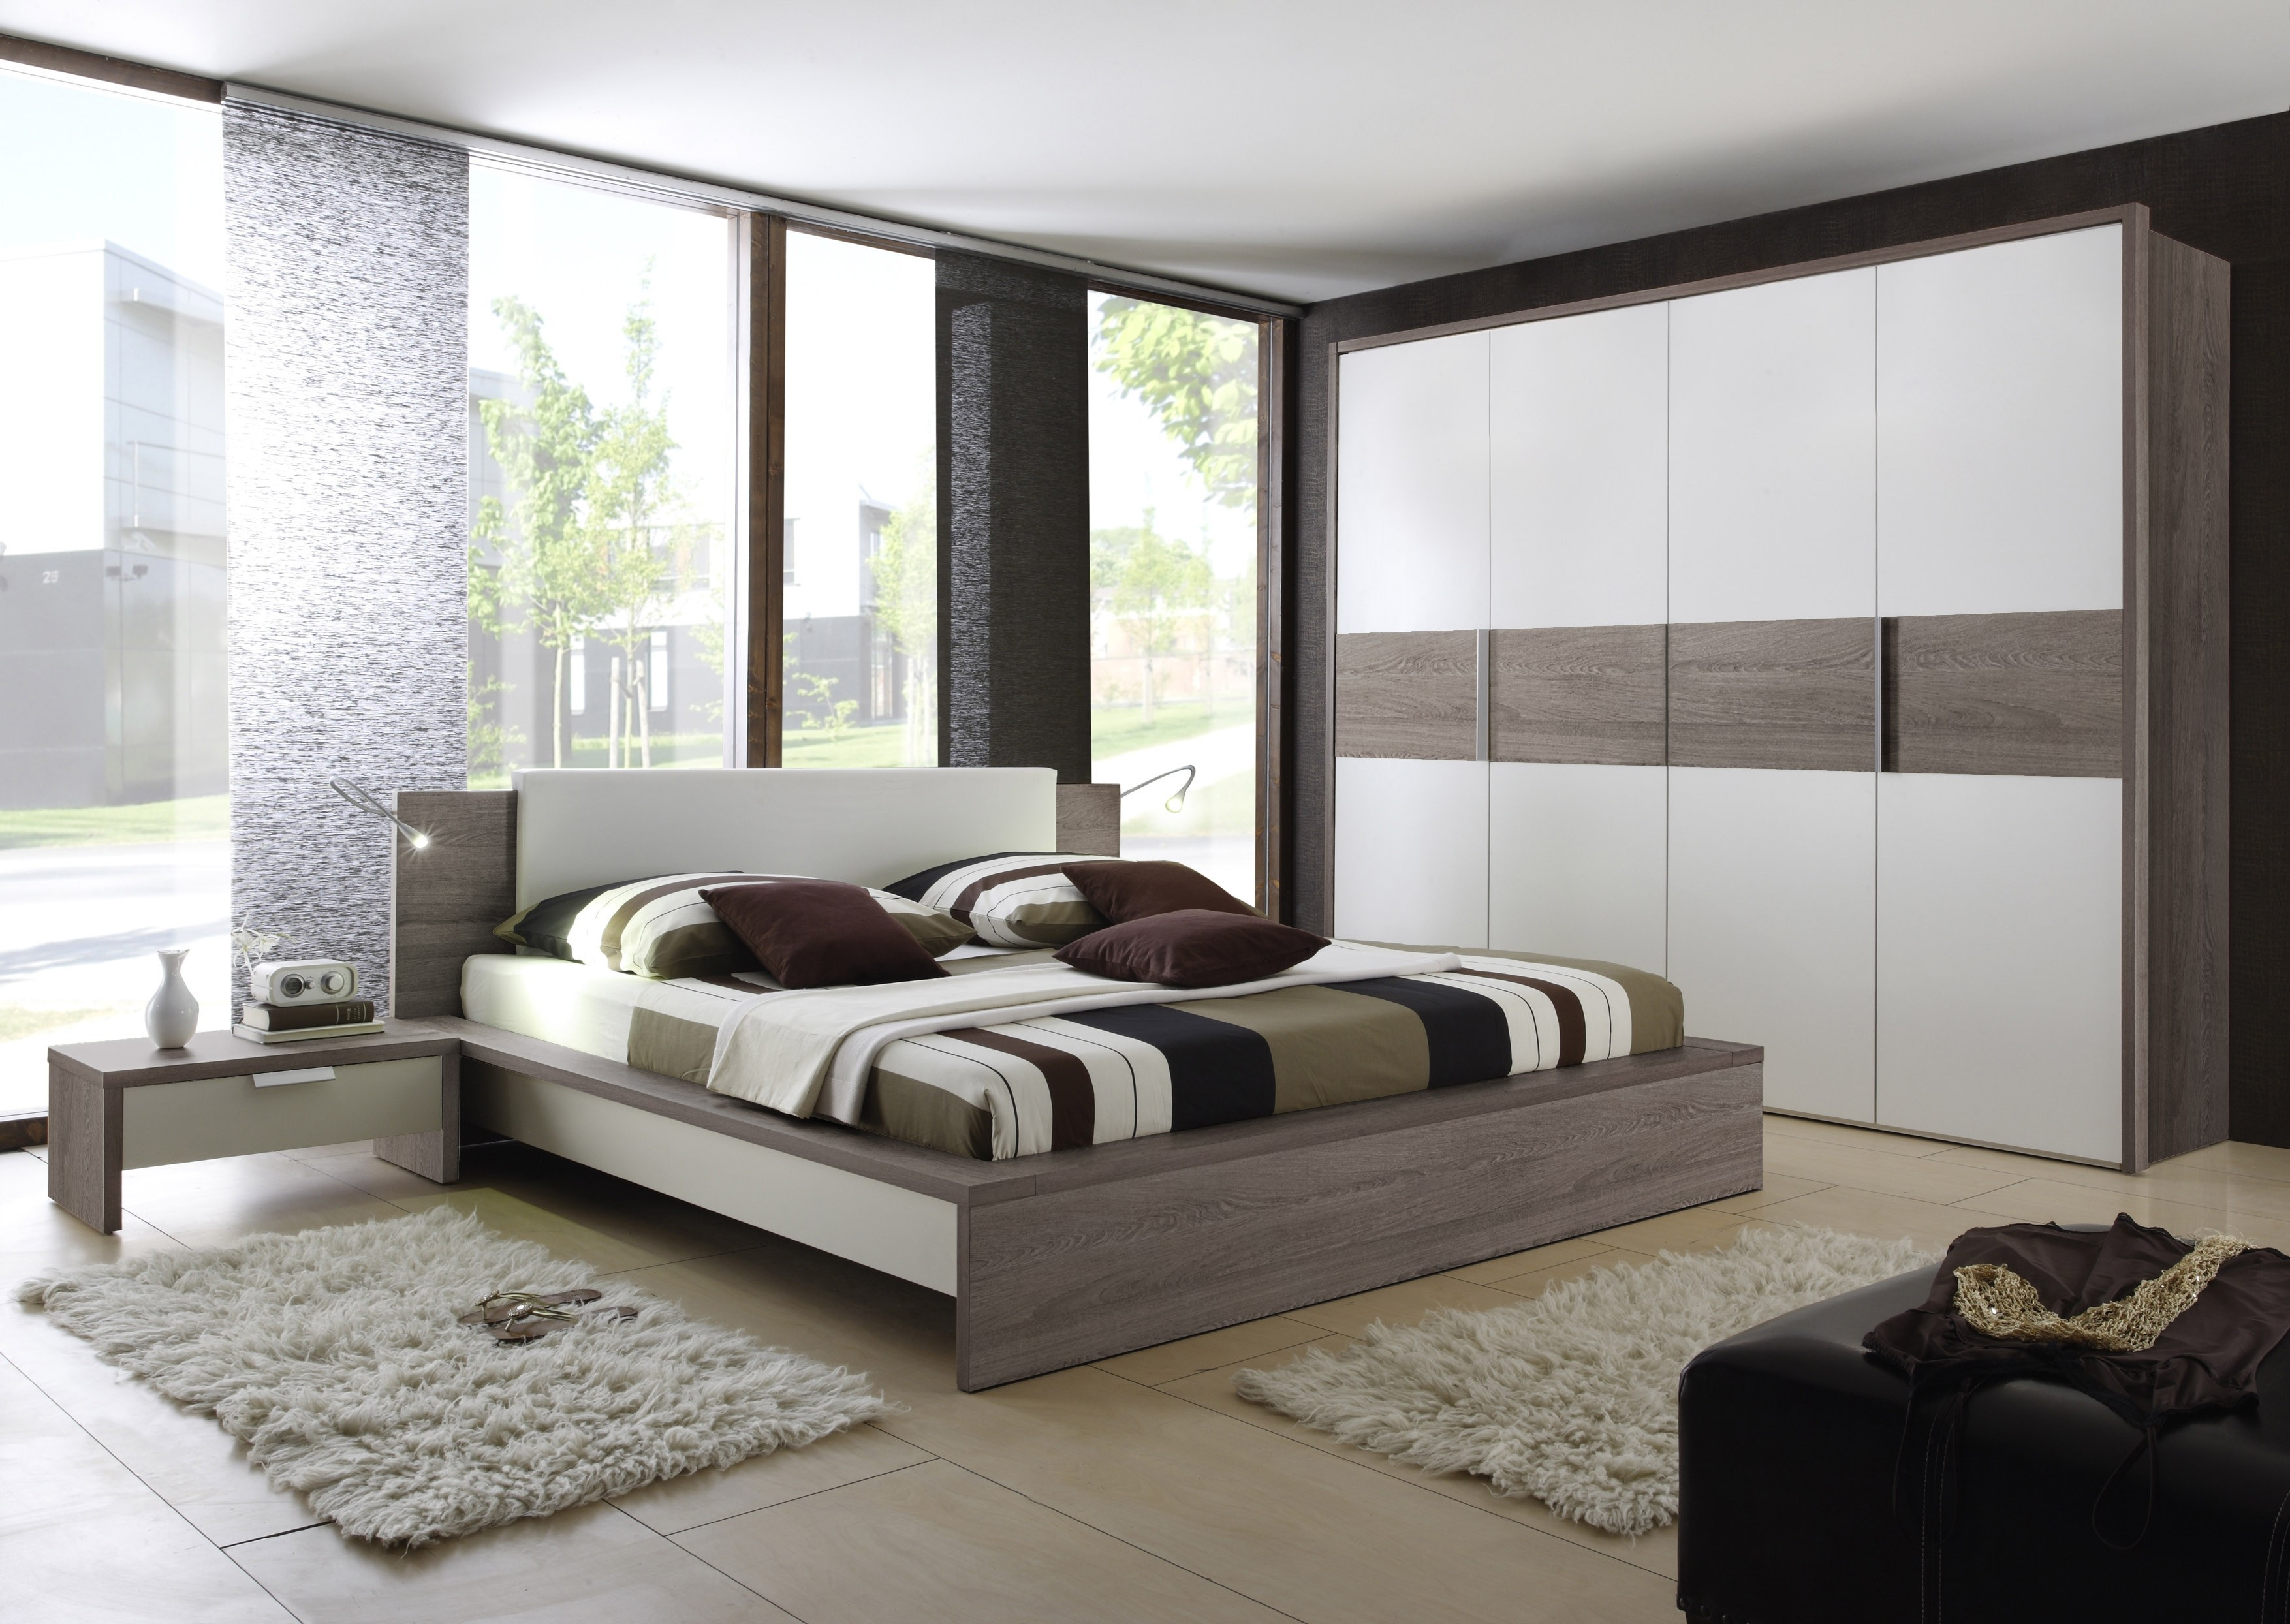 tapis pour chambre adulte 16 id es de d coration int rieure french decor. Black Bedroom Furniture Sets. Home Design Ideas